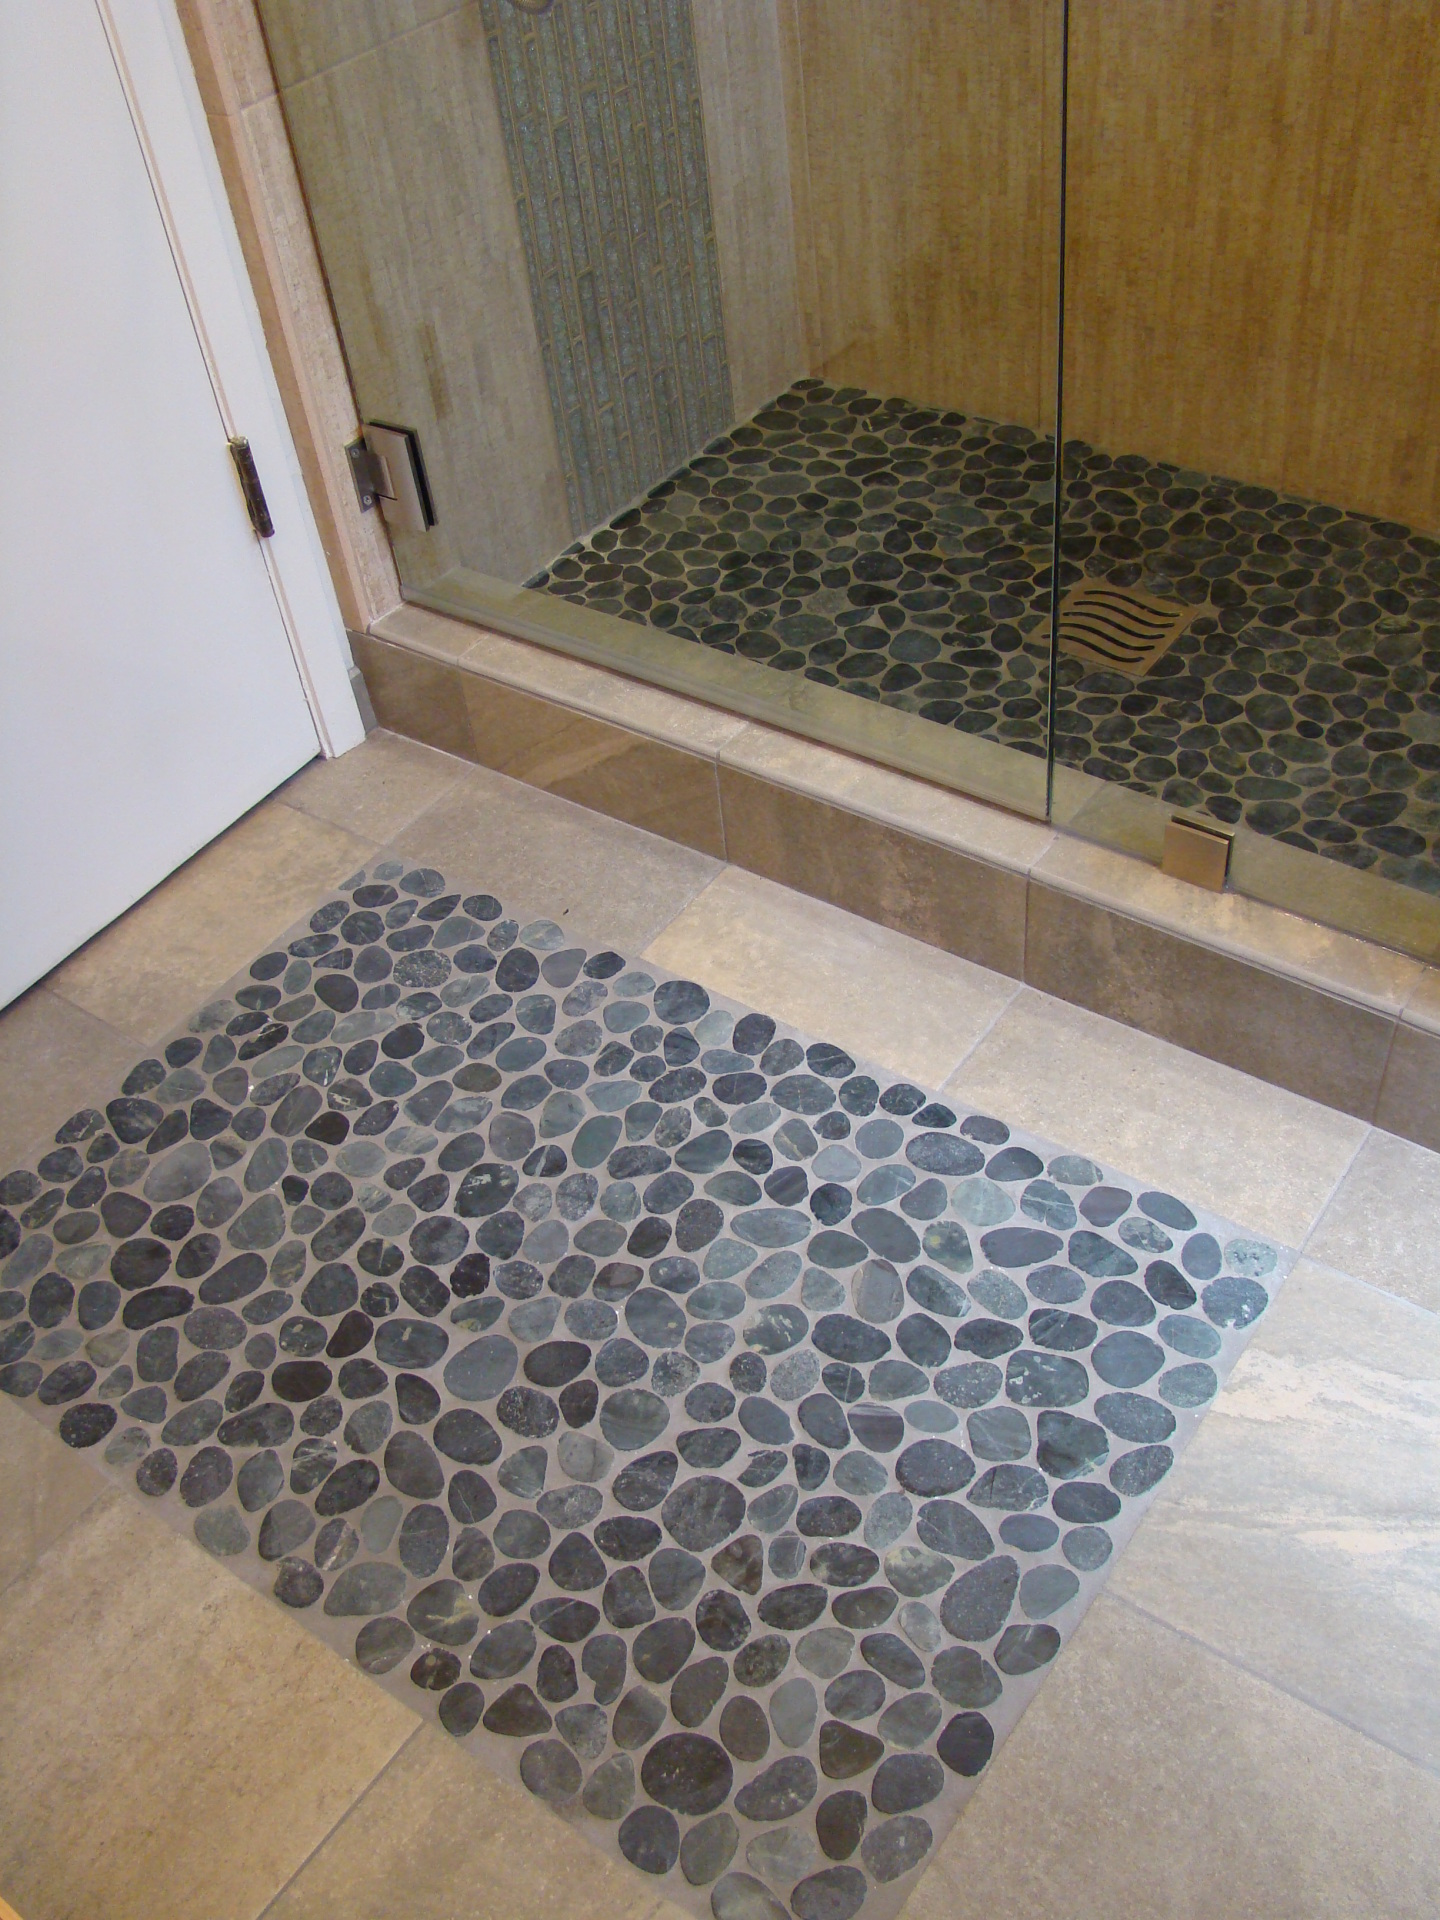 Fiorito Interior Design, interior design, remodel, bathroom, tropical, pebble rug, pebble shower pan, shower